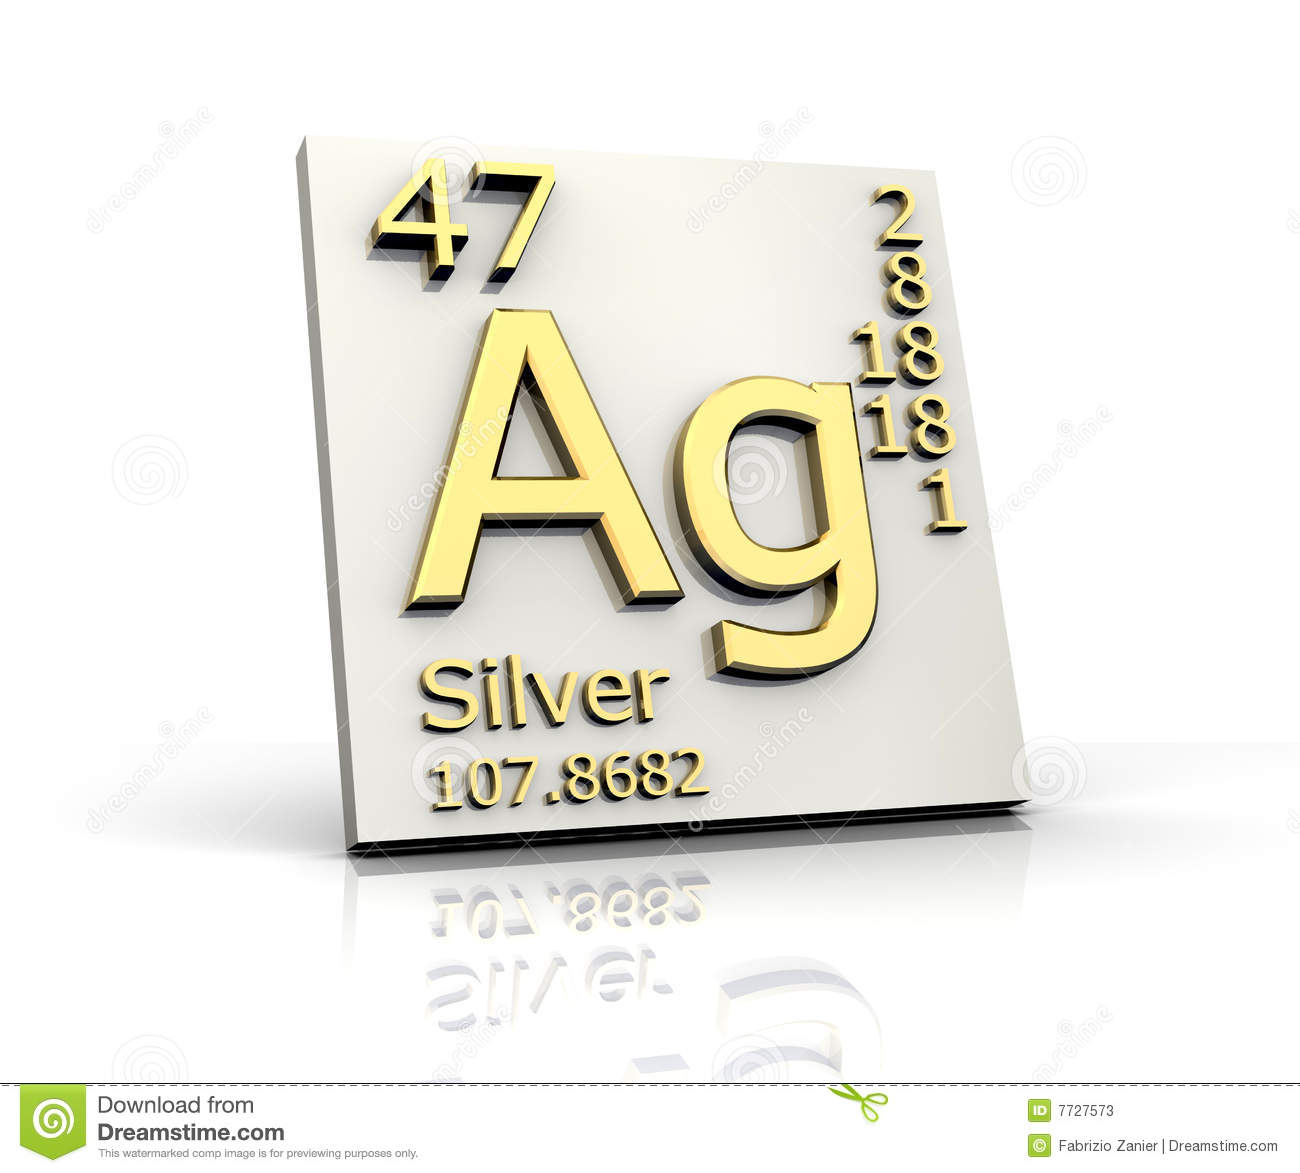 Silver form periodic table of elements stock illustration silver form periodic table of elements buycottarizona